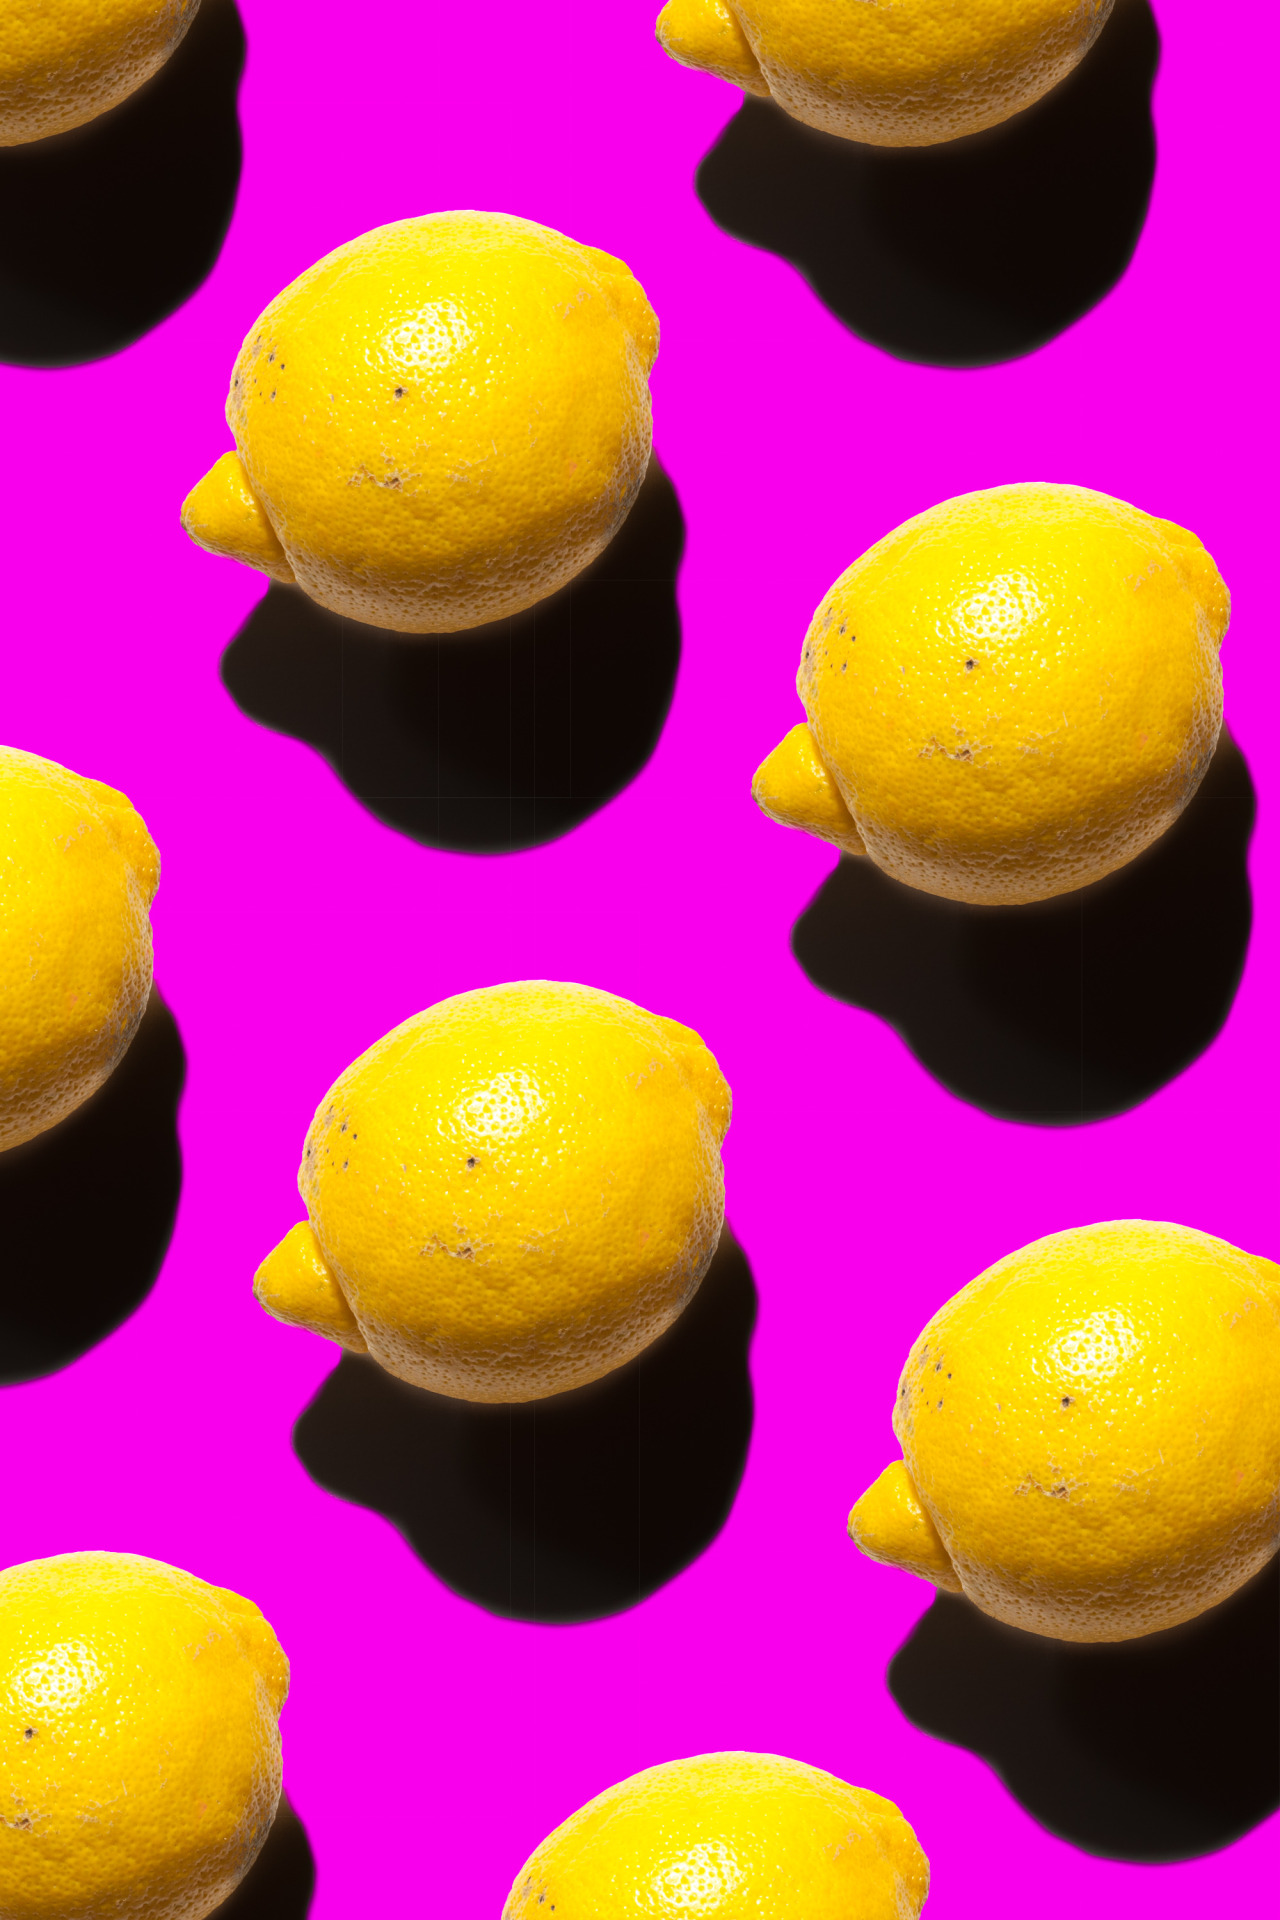 Testing my new lights with a lemon & making funky stuff while doing it.